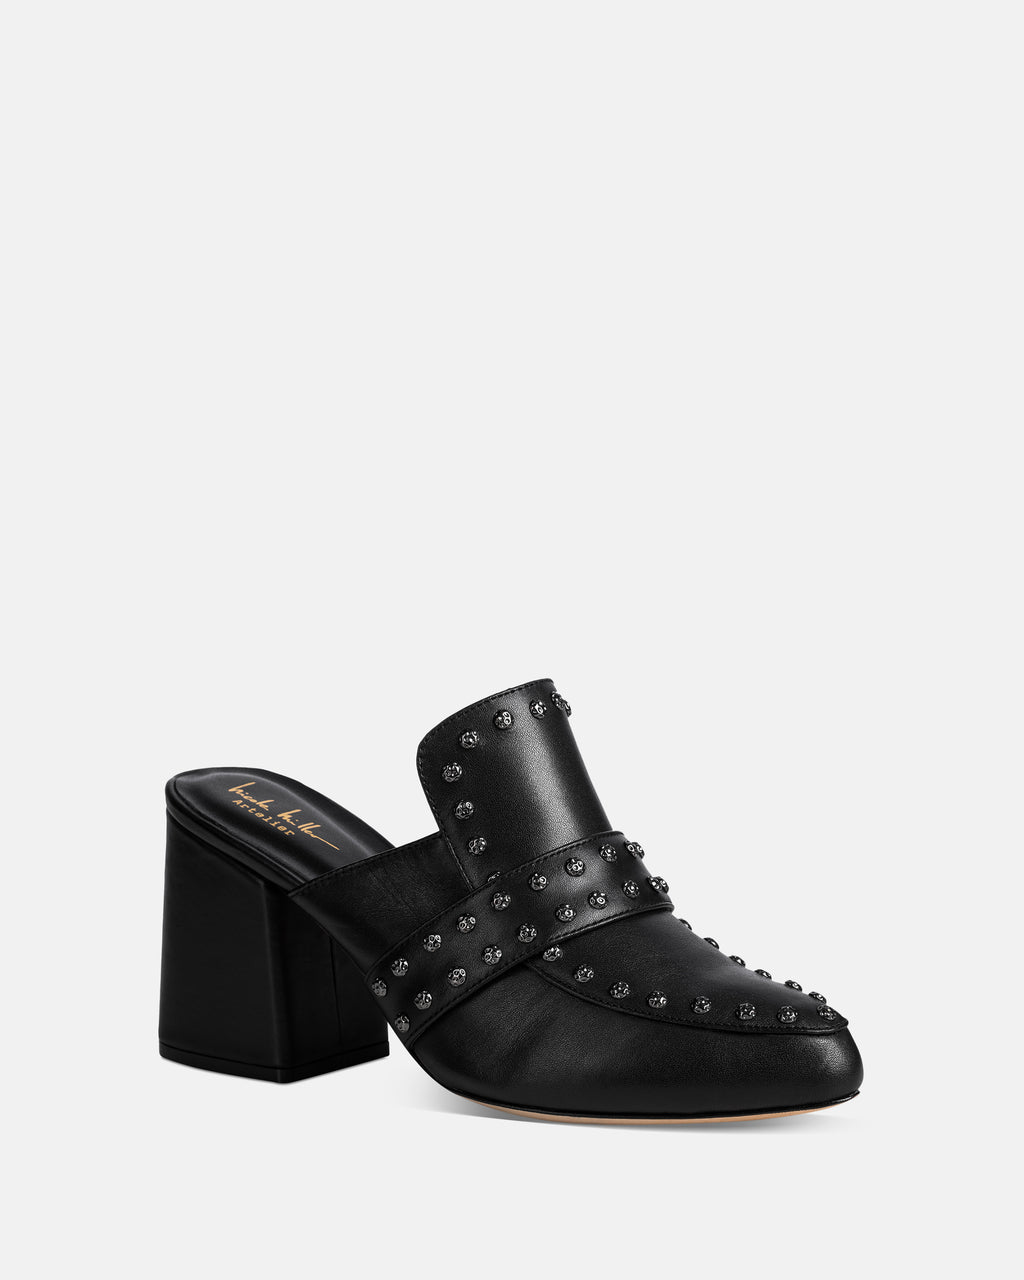 ANDRIA2 - ANDRIA MULE - shoes - shoes - This black leather mule is an easy to wear with a block heel and the perfect edgy update to a black boot with grommet detail.